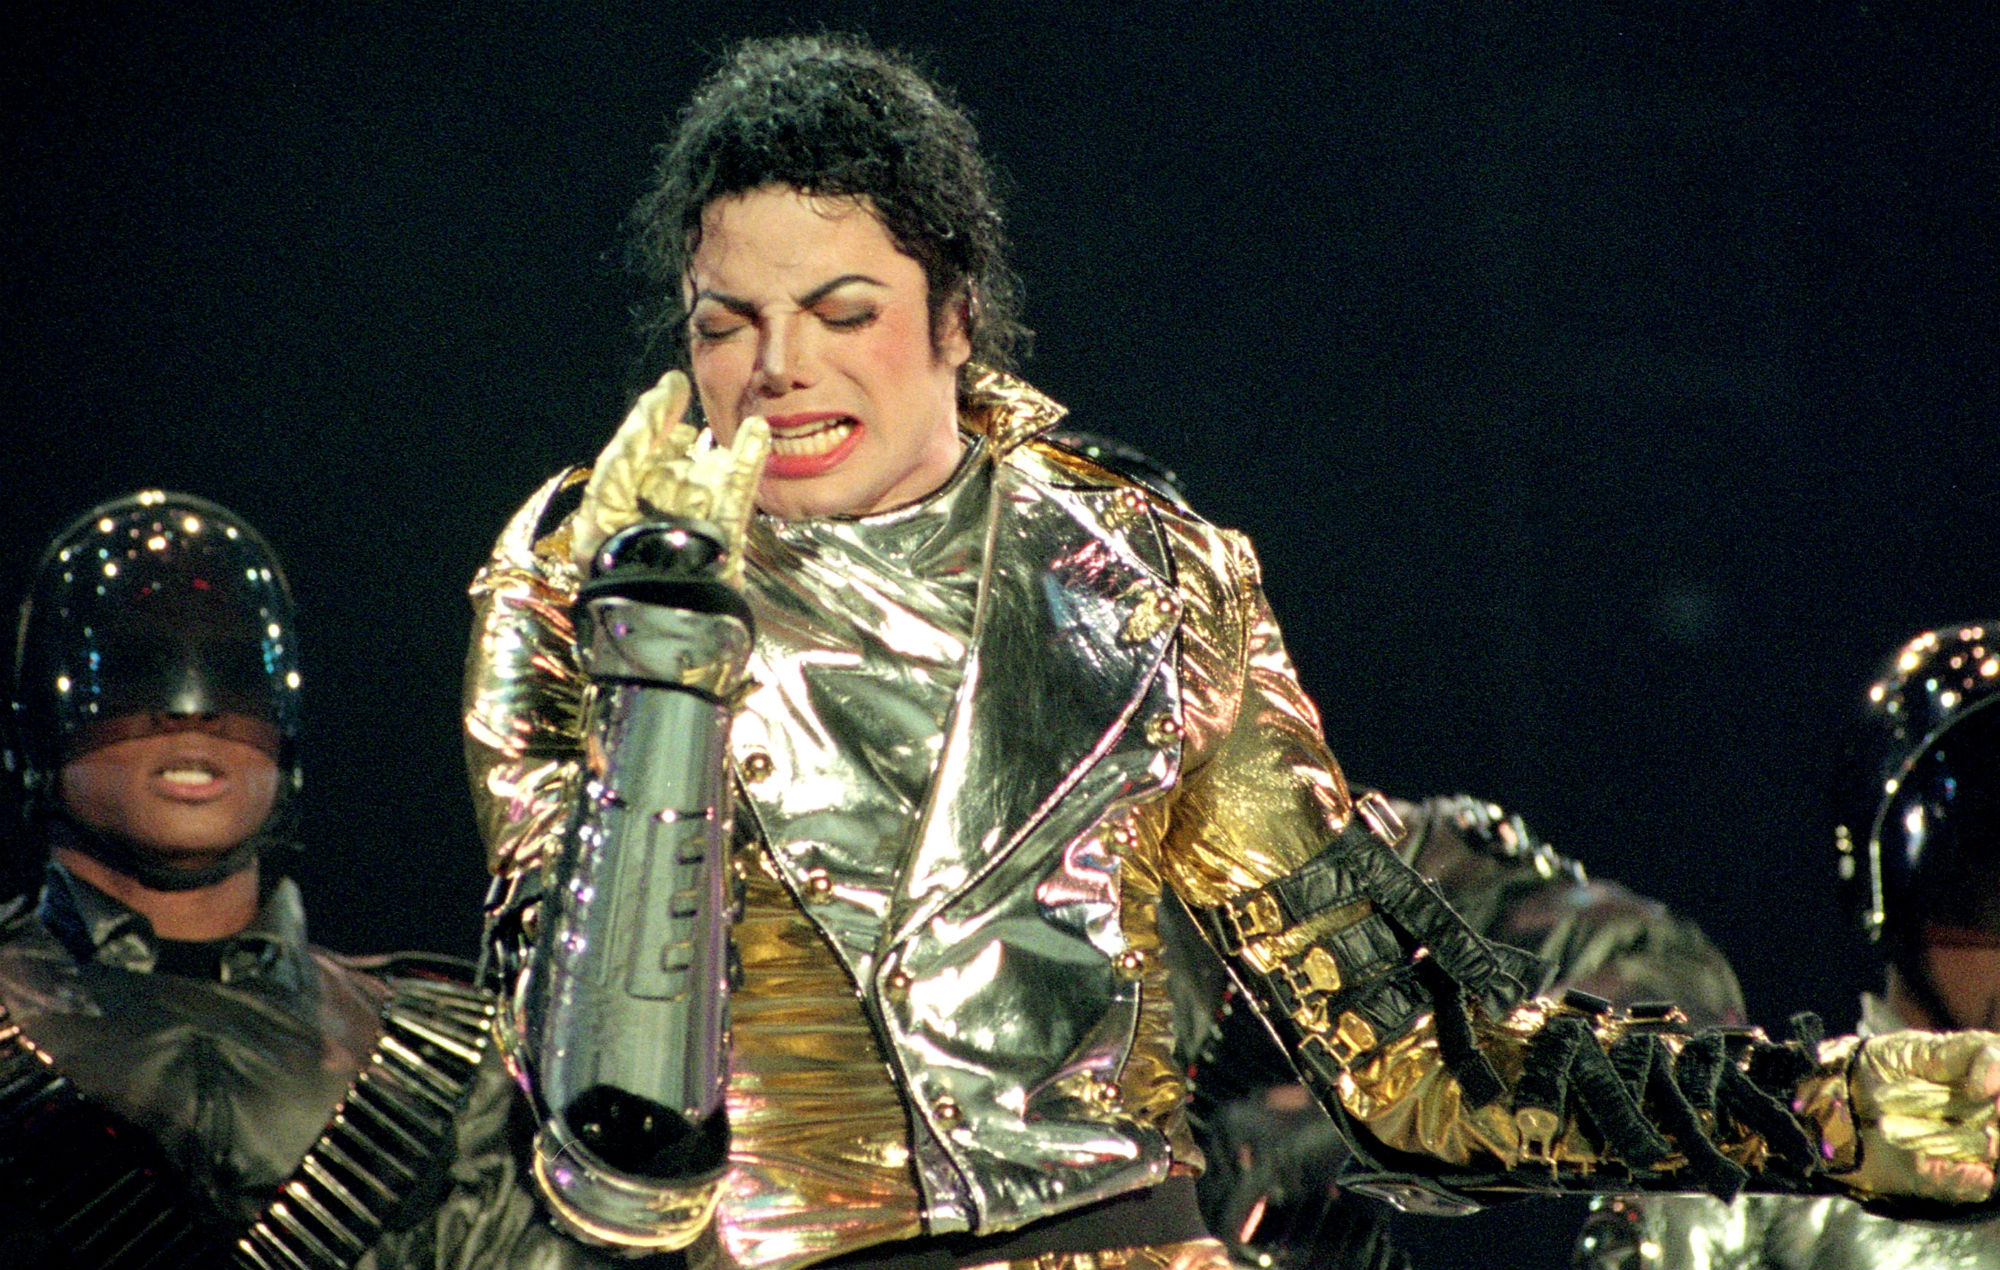 Michael Jackson accused of assaulting Bubbles The Chimp